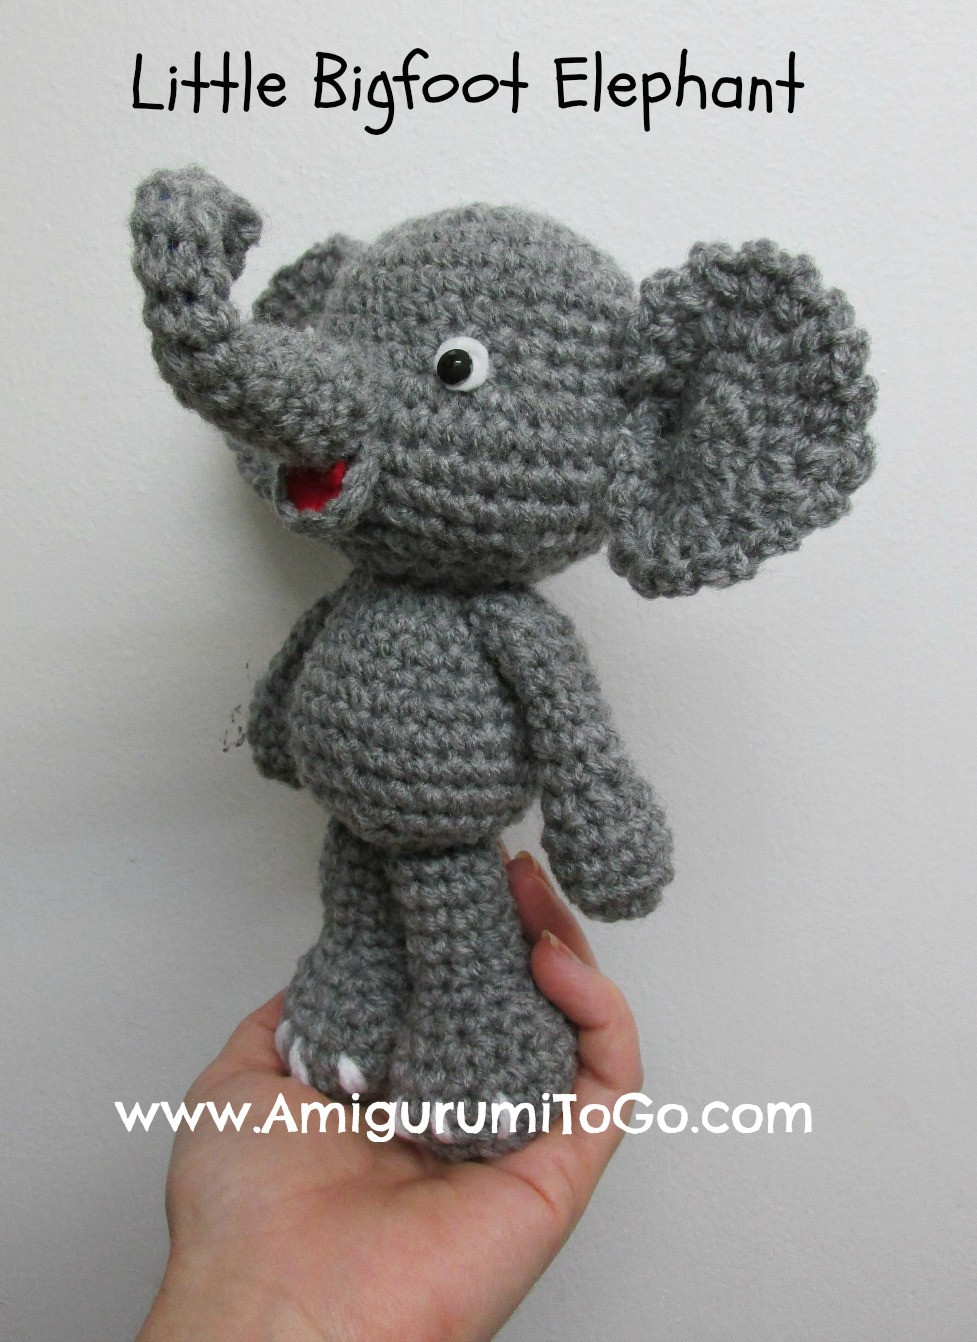 Crochet Elephant Awesome Cute Elephant Video Tutorial In the Works Amigurumi to Go Of Amazing 49 Models Crochet Elephant